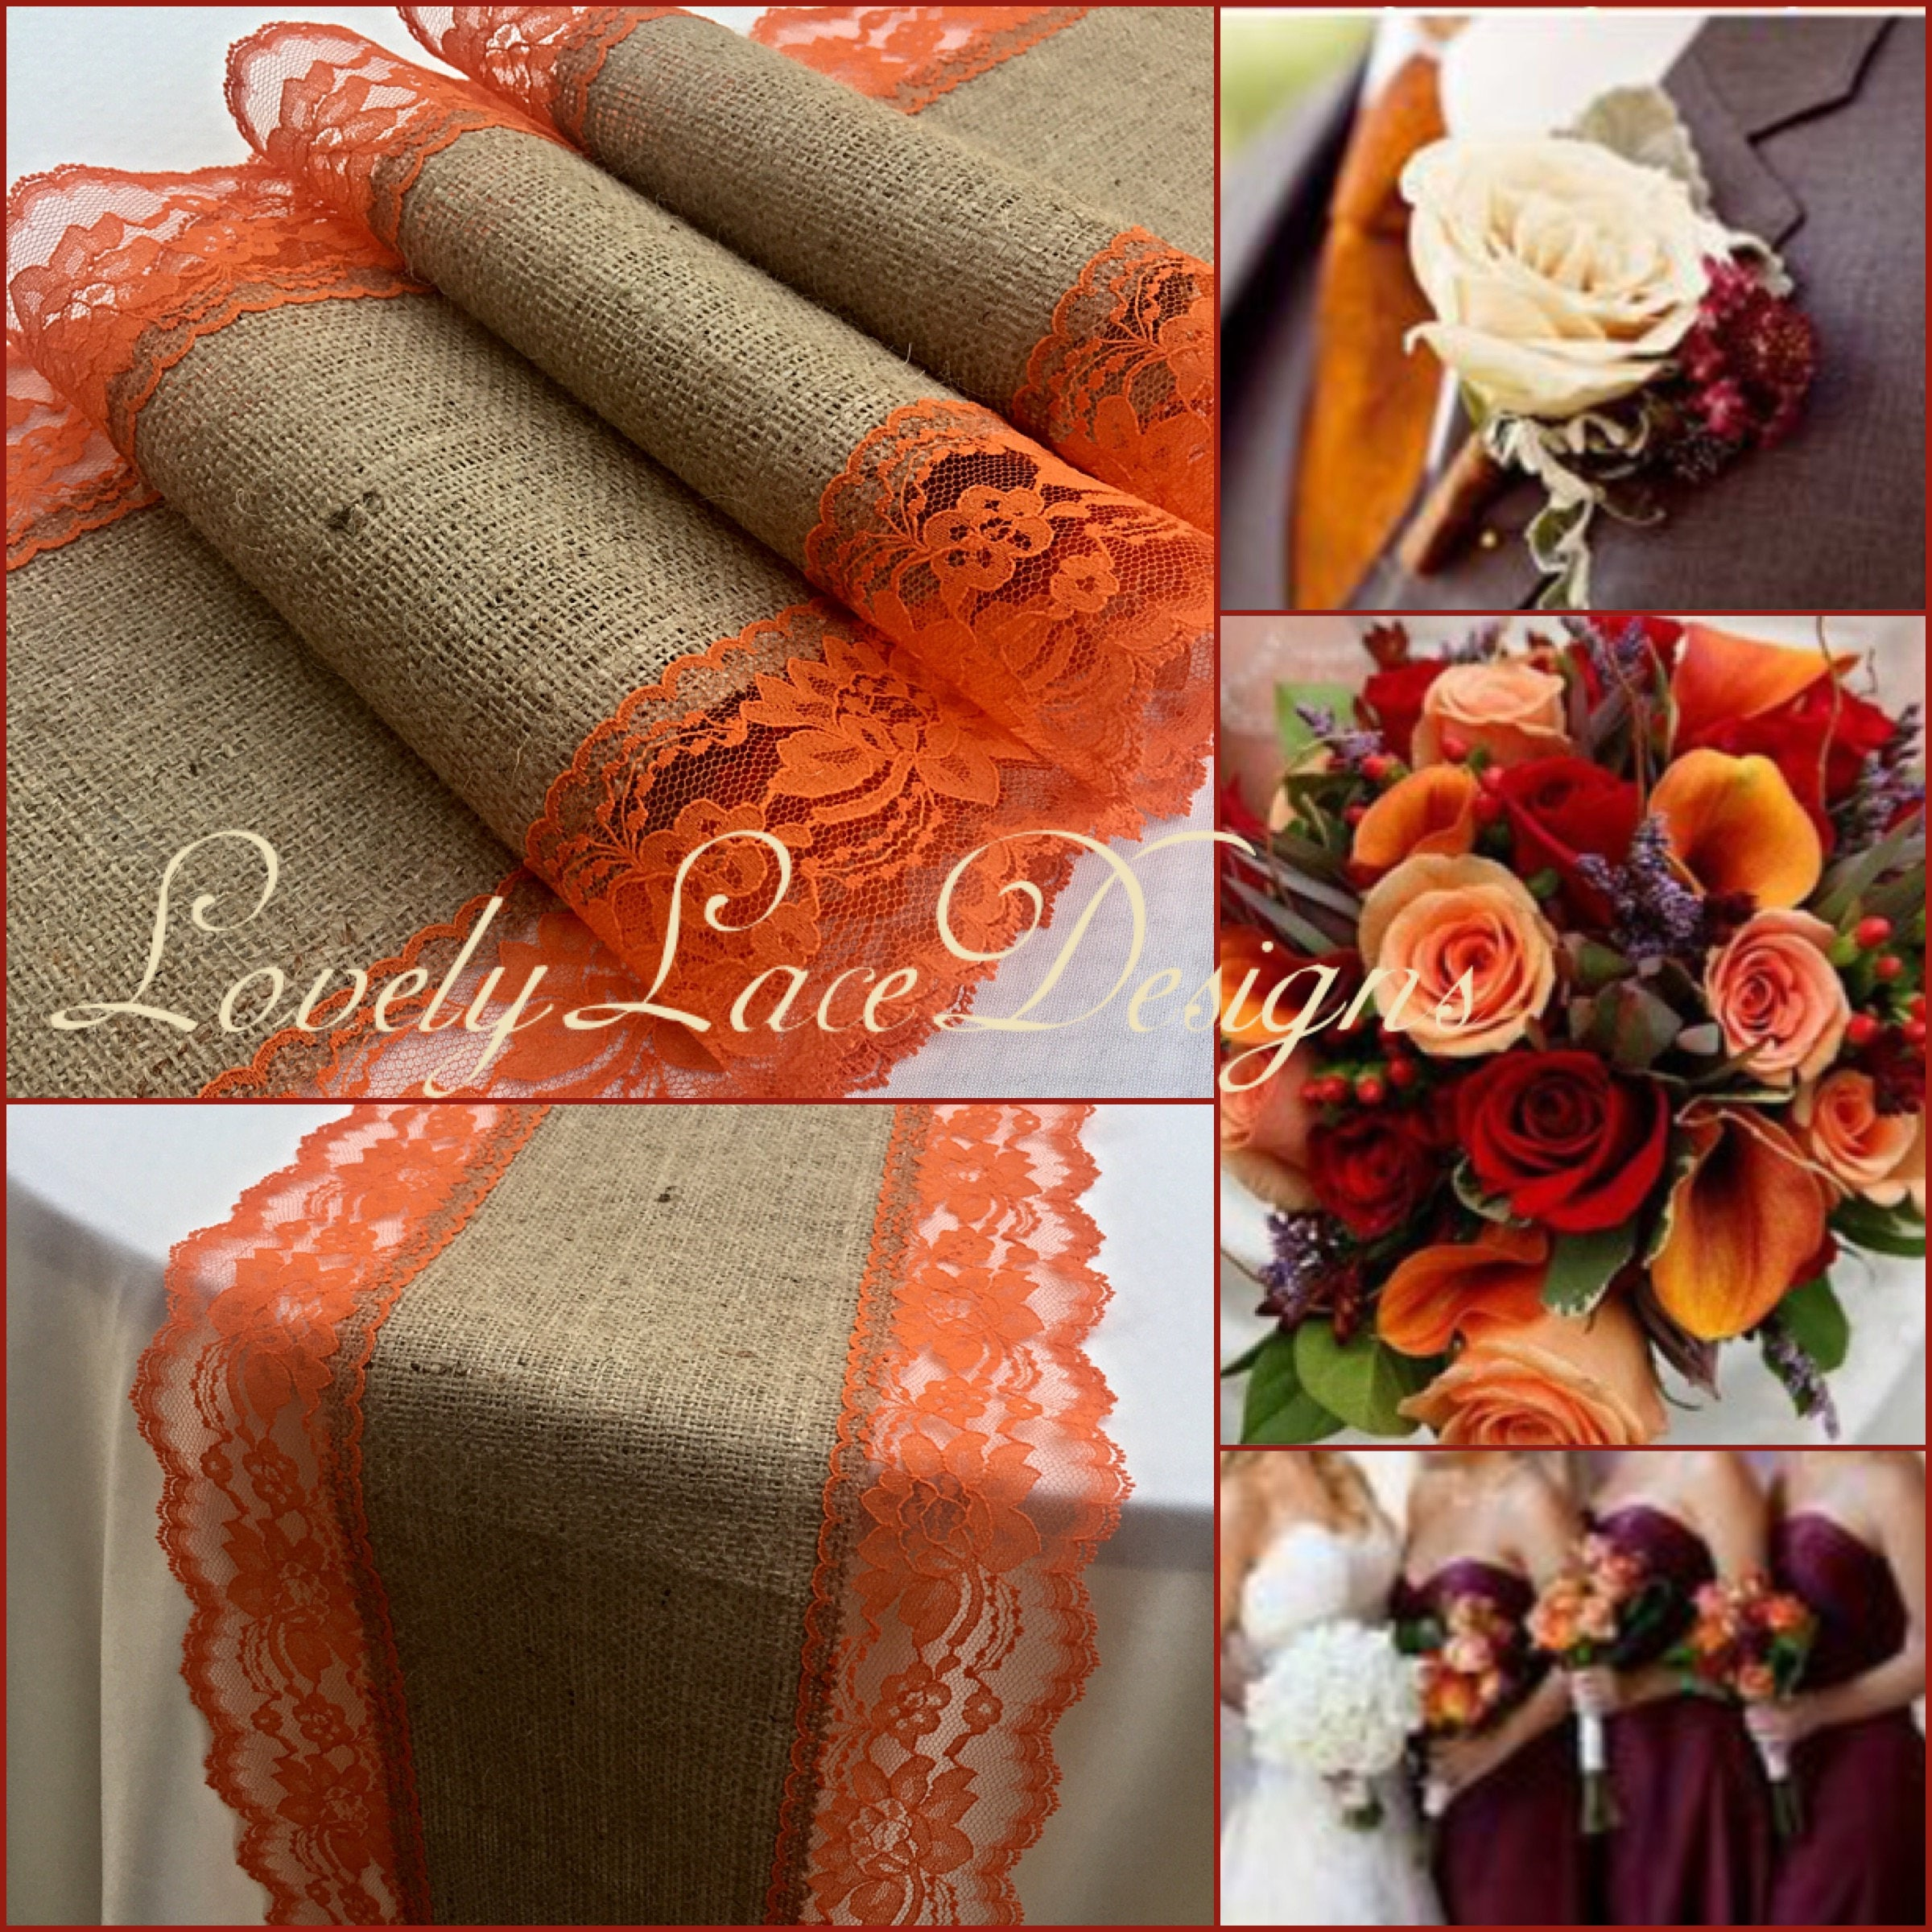 Burlap Lace Table Runner /Burnt Orange/3FT 10FT X 11 Wide/Rustic/Wedding  Decor/Weddings/fall Decoration/centerpiece/tabletop